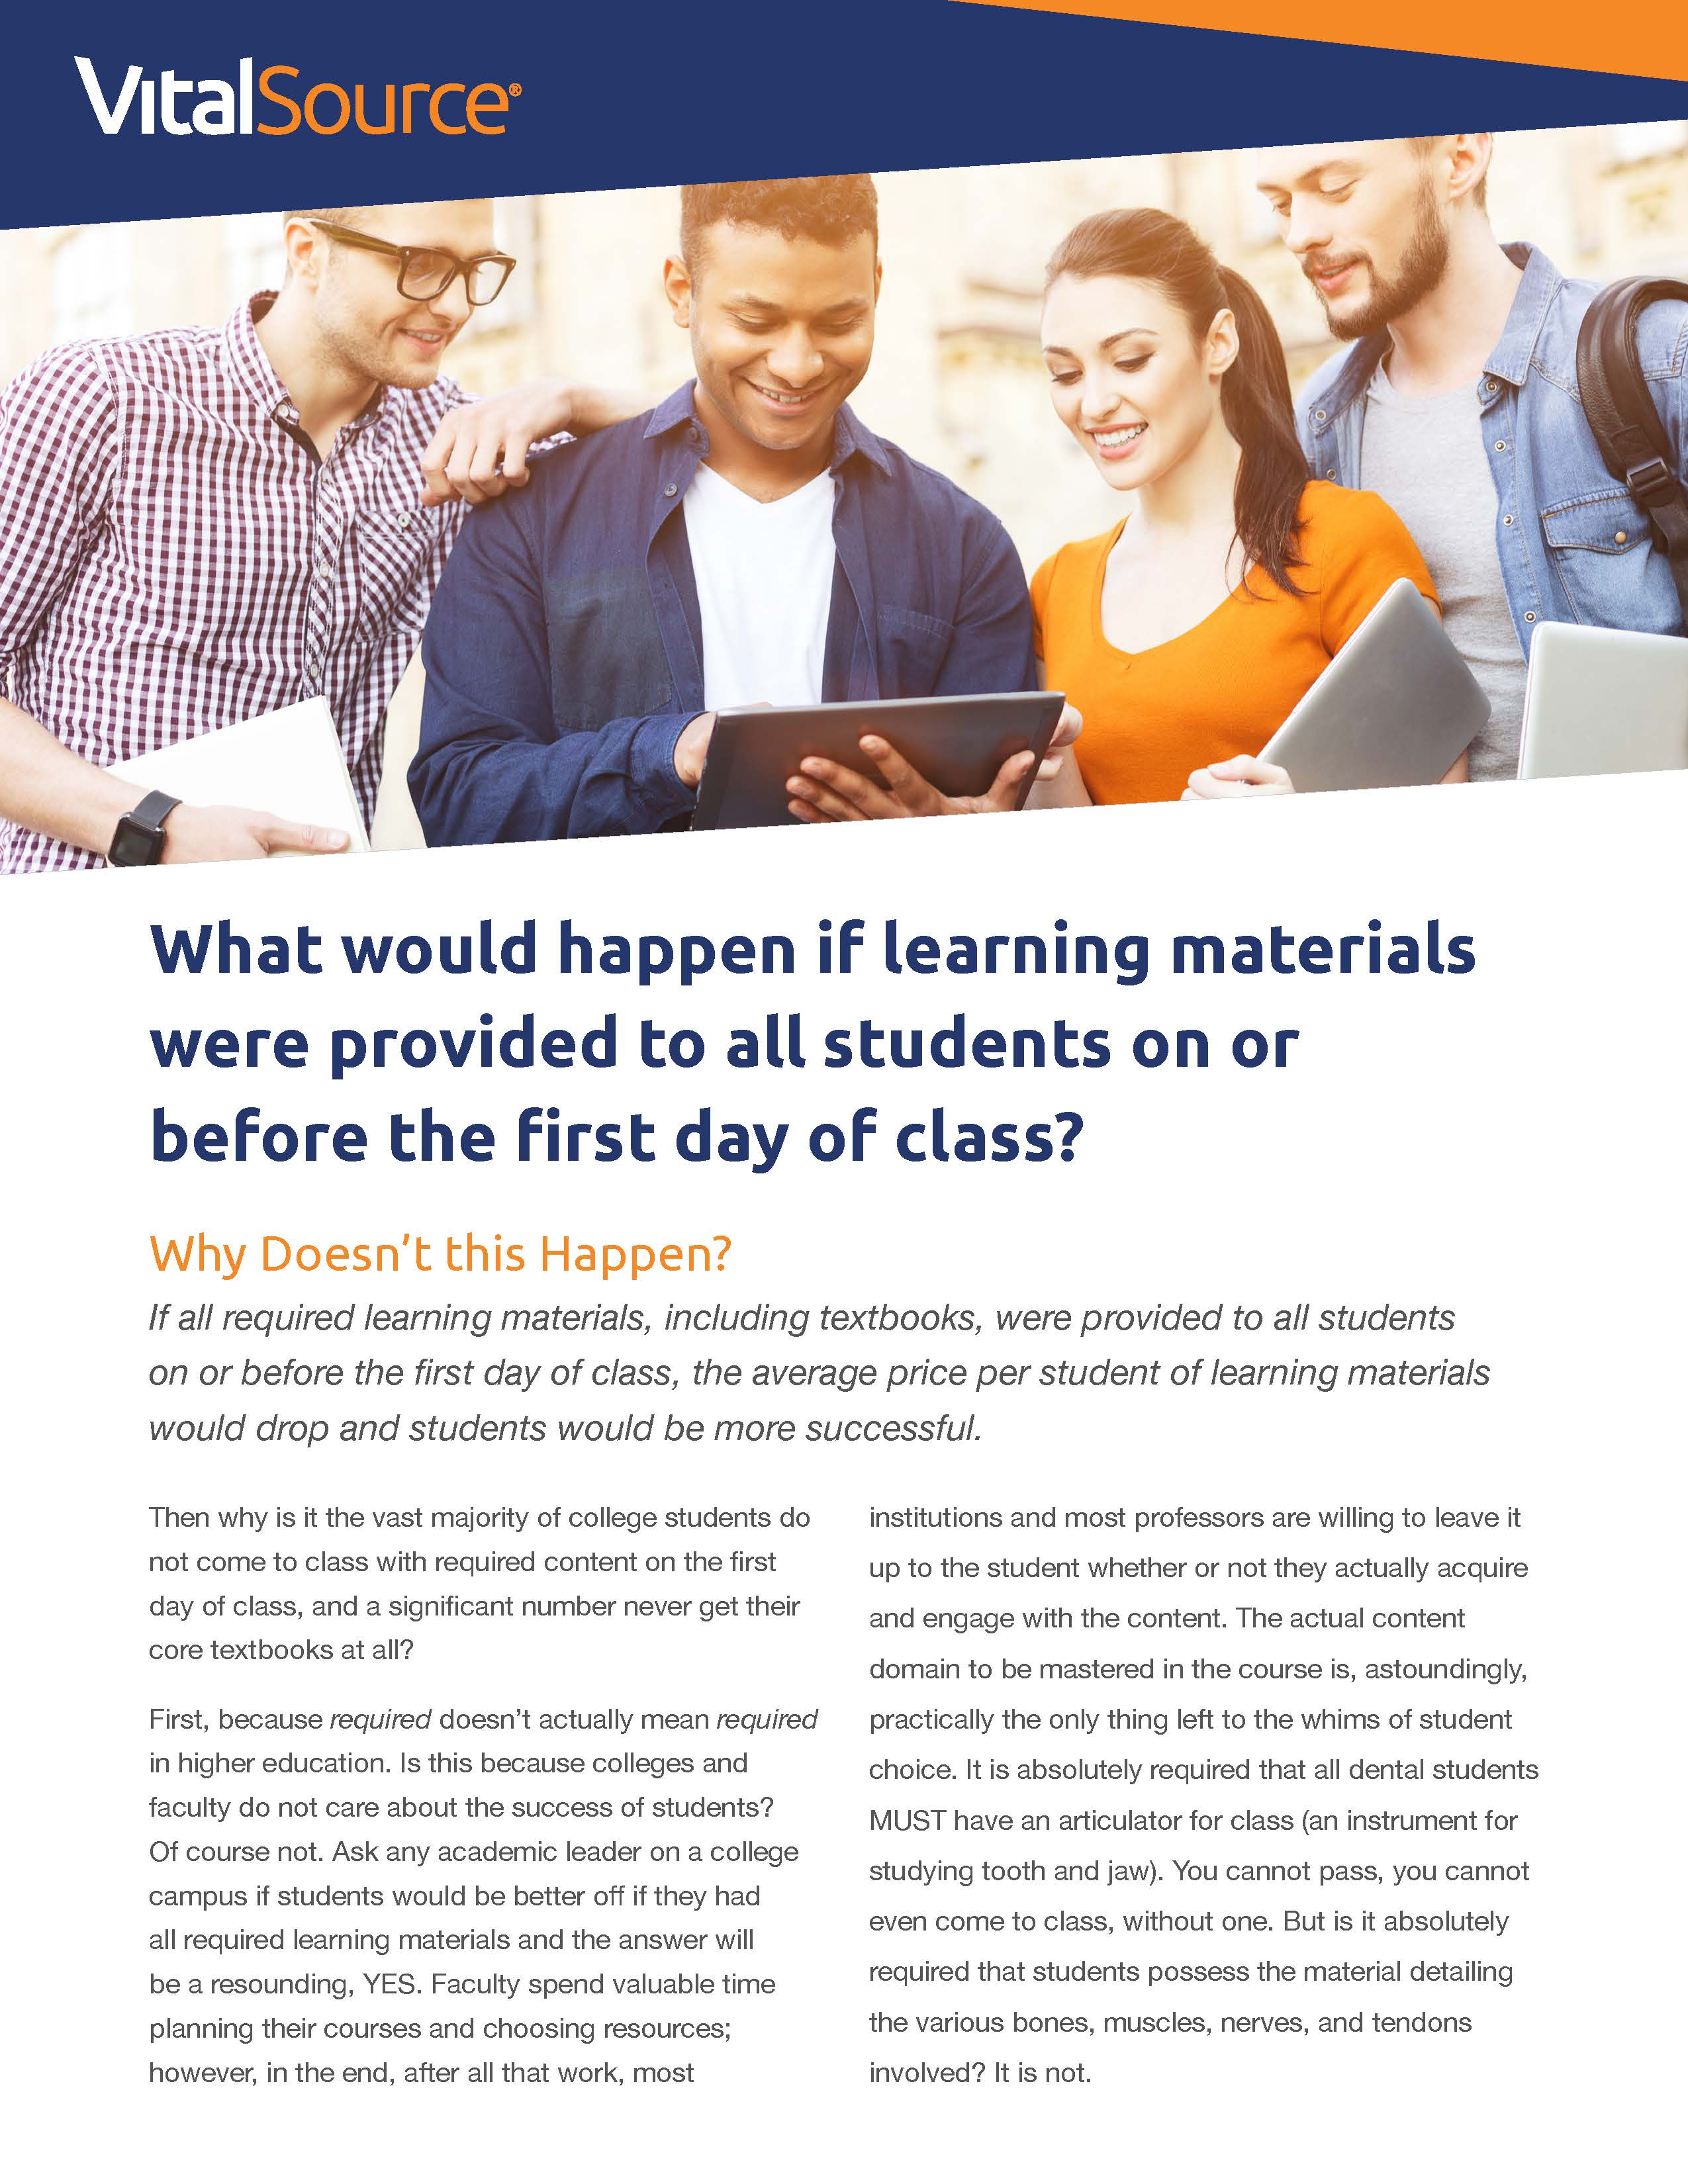 Accessibility and Affordability of Course Materials for Students